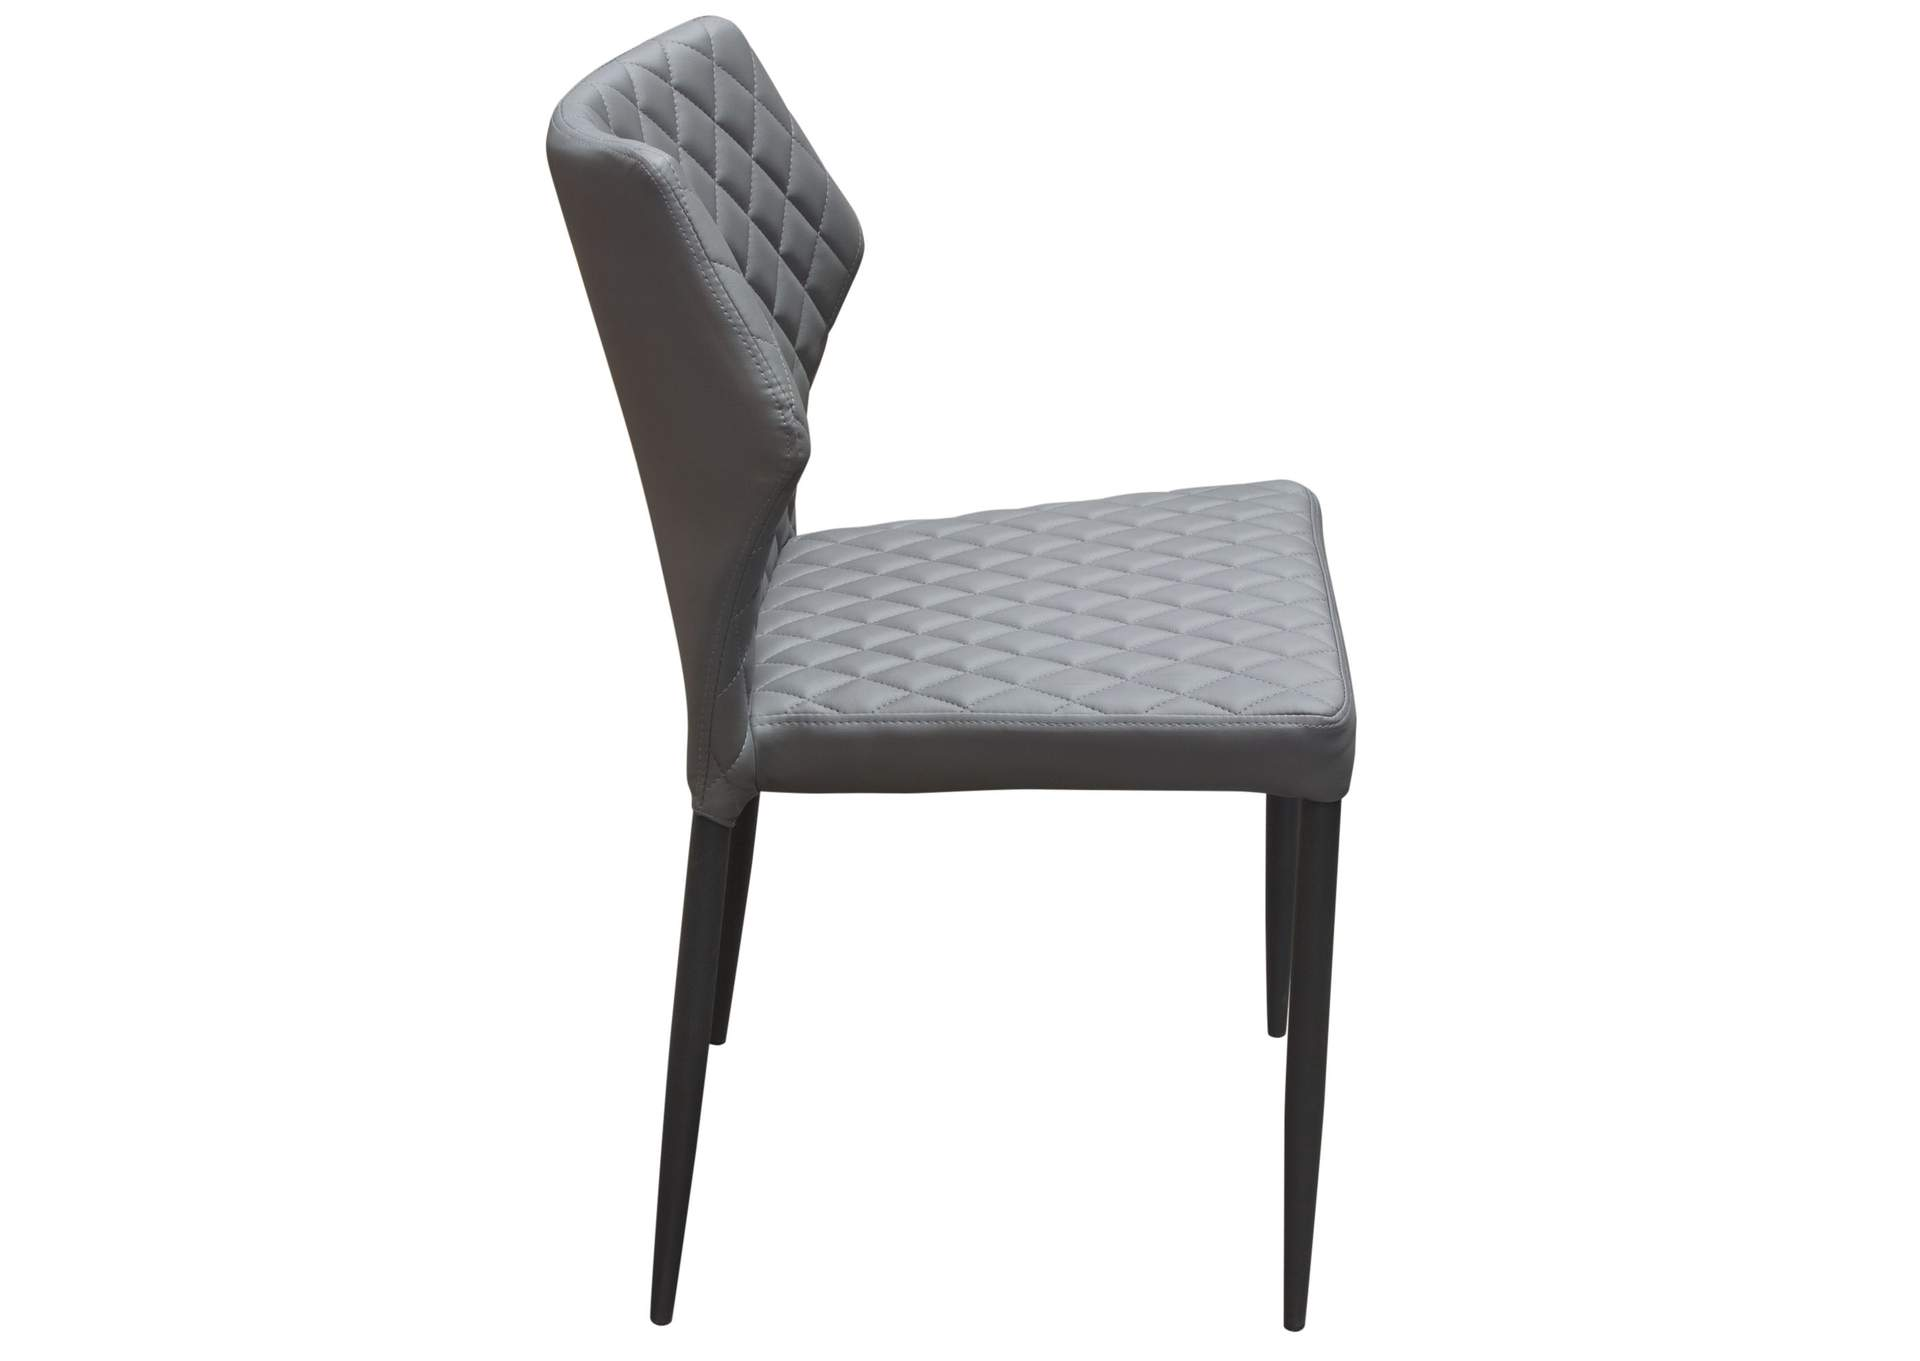 Milo Grey Diamond Tufted Leatherette Dining Chairs w/Black Powder Coat Legs (4Pc),Diamond Sofa